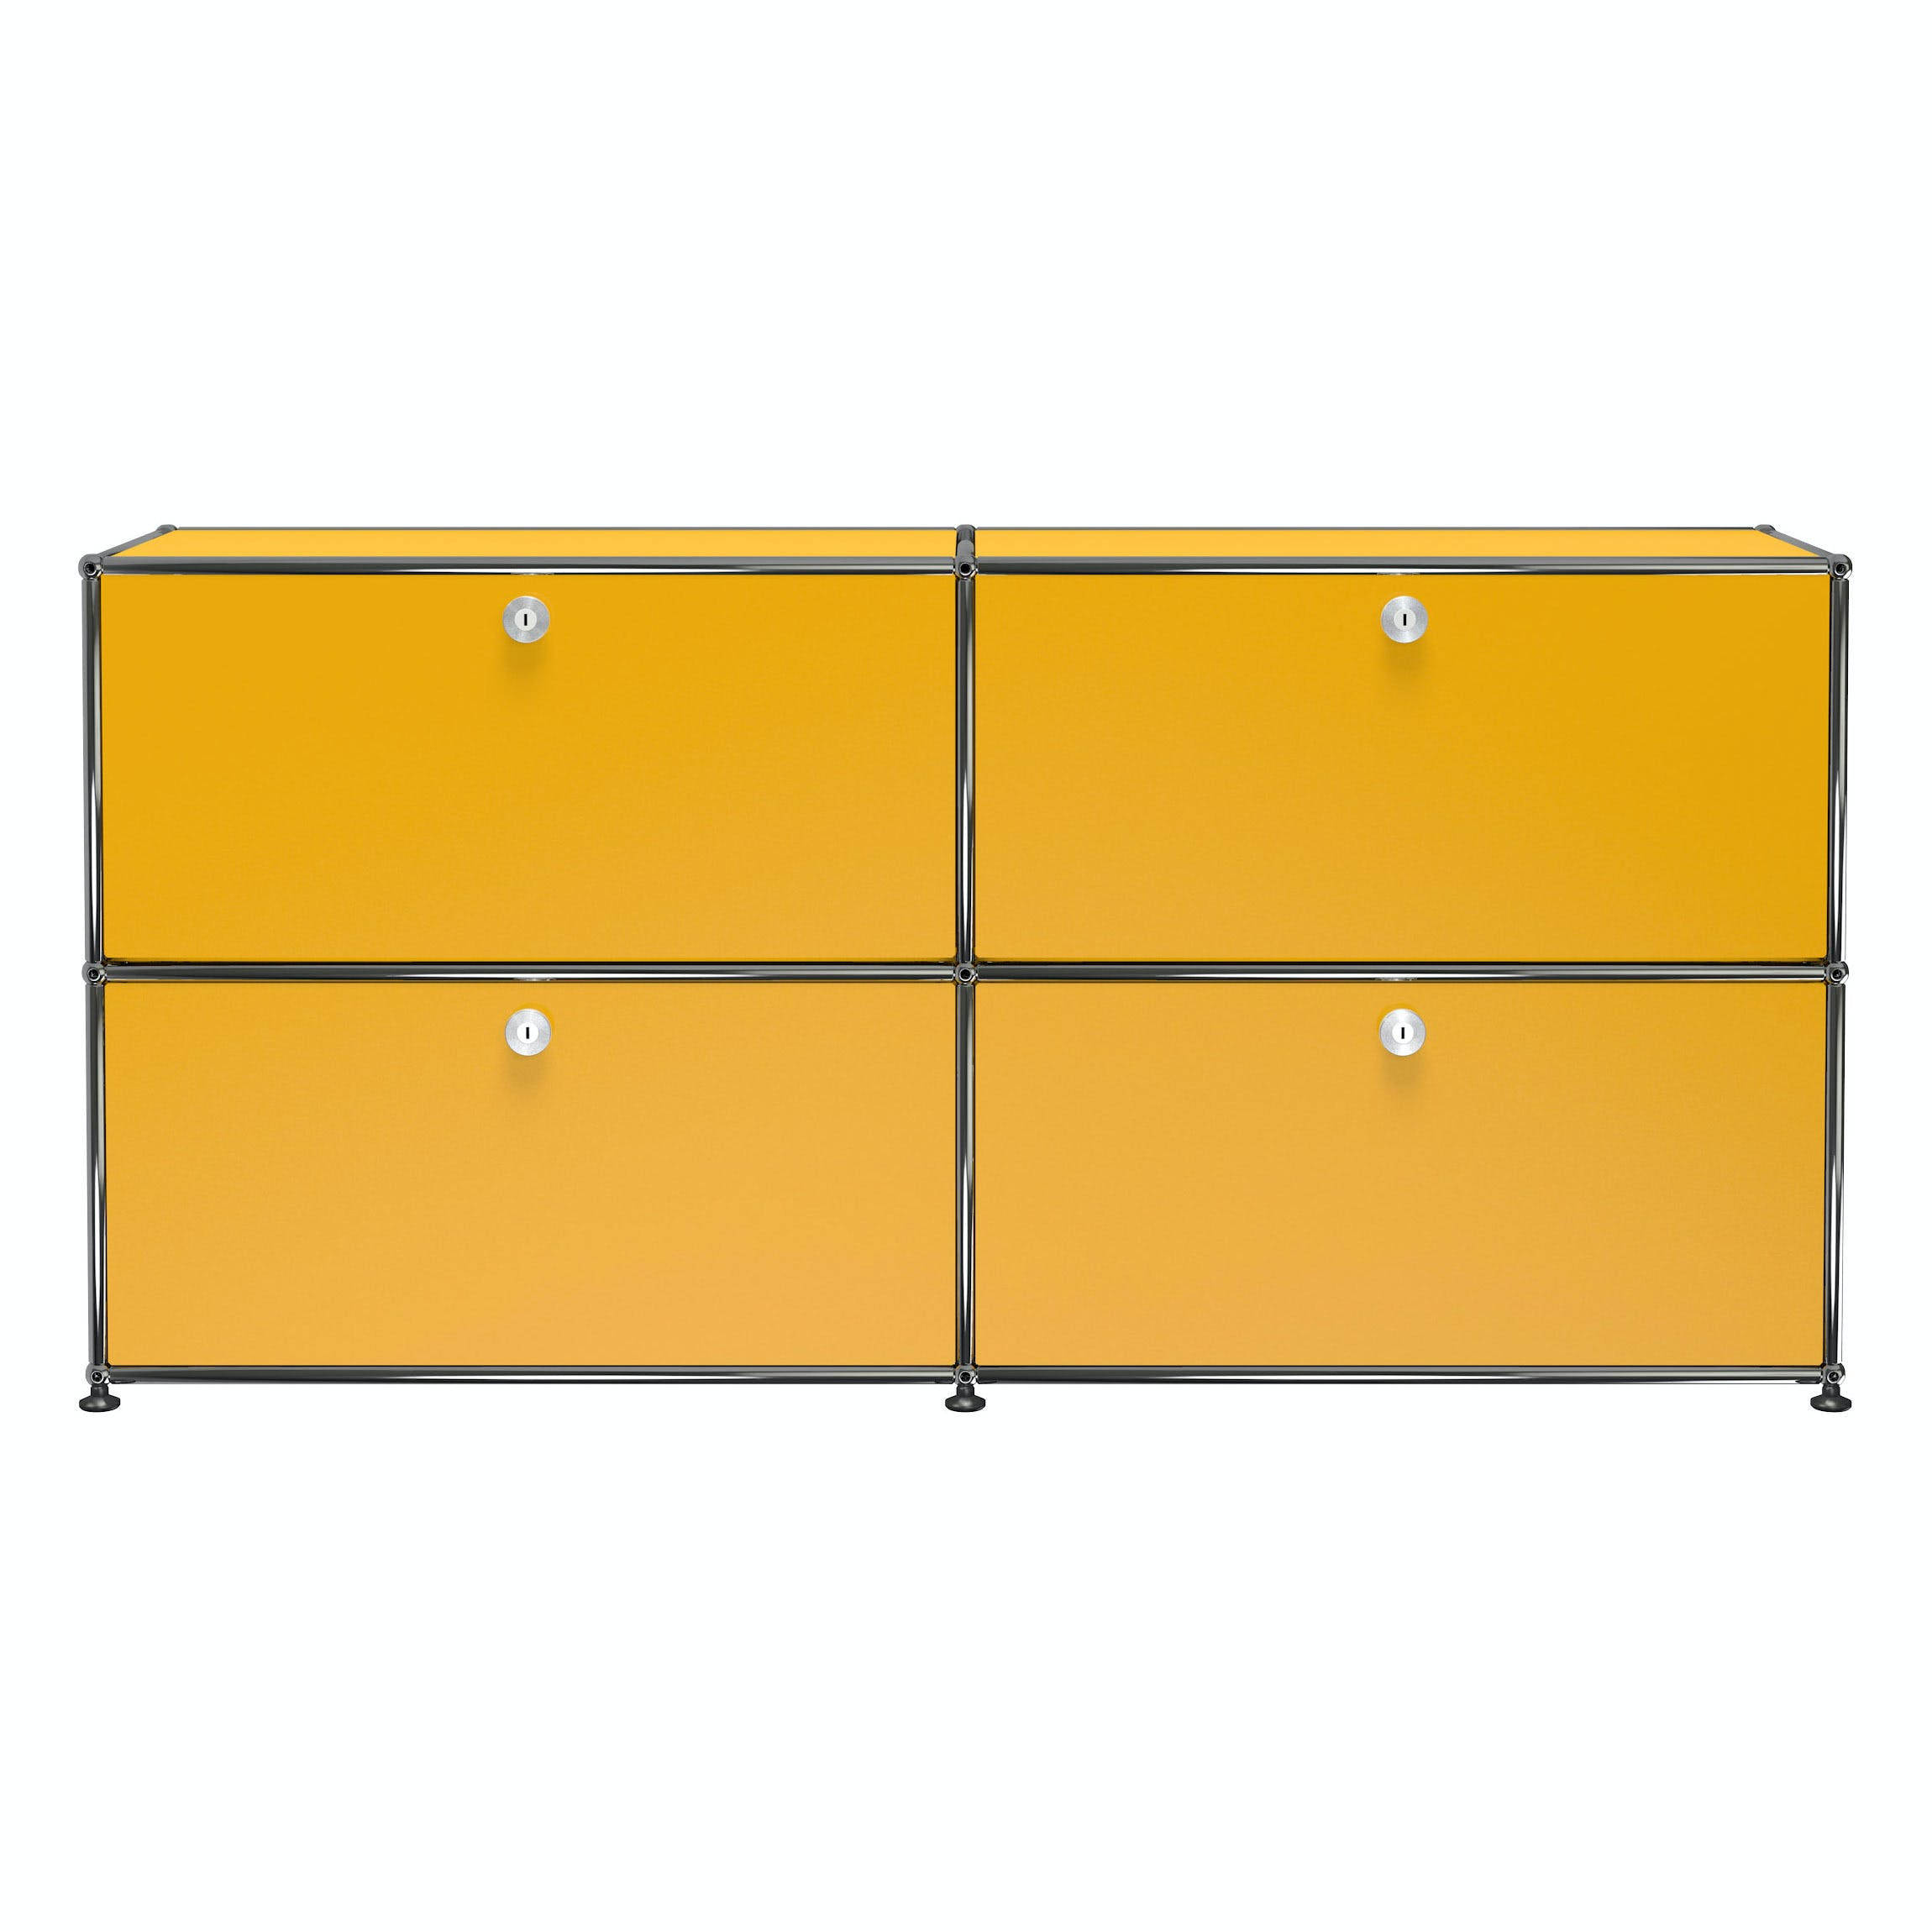 Usm-quick-ship-Haller-Modern-Credenza-E2F-yellow-haute-living